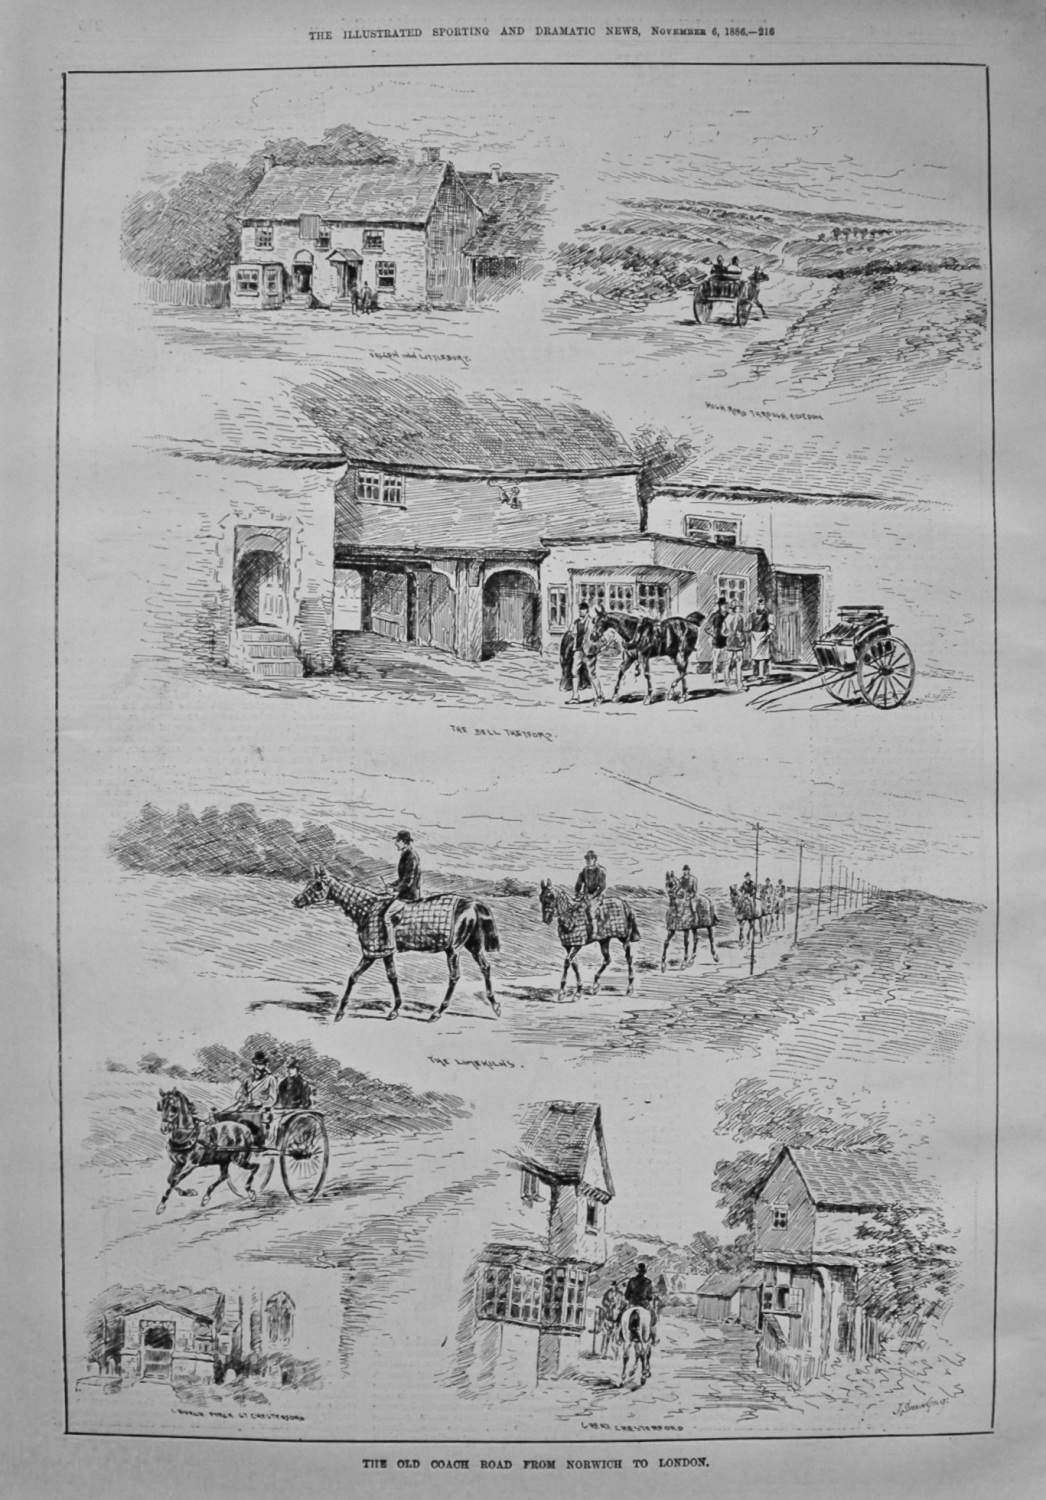 The Old Coach Road from Norwich to London. 1886